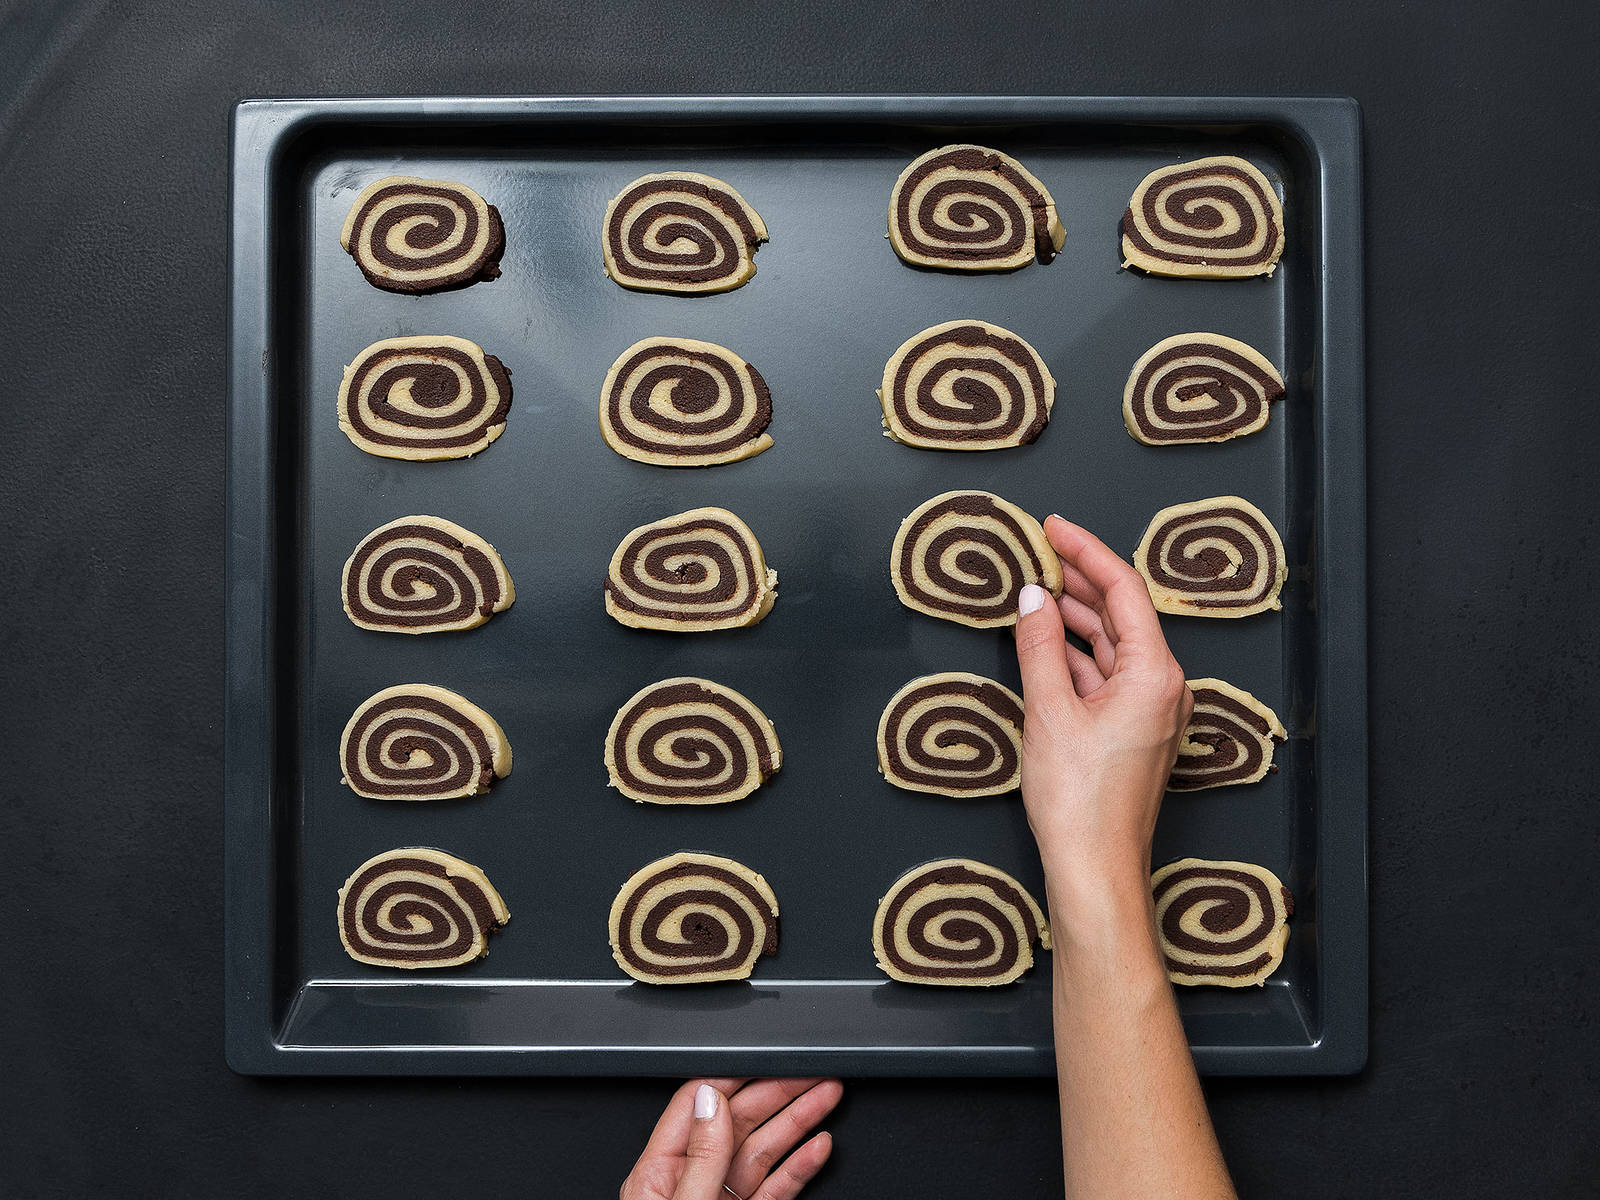 Pre-heat oven to 180°C/ 350°F. Remove dough from the freezer and cut into 1-cm/ 0.5 in. slices and transfer to a baking sheet lined with parchment paper. Place in the oven for approx. 12 – 15 min. Remove from the oven and set aside to cool slightly before transferring to a wire rack to cool completely. Enjoy!